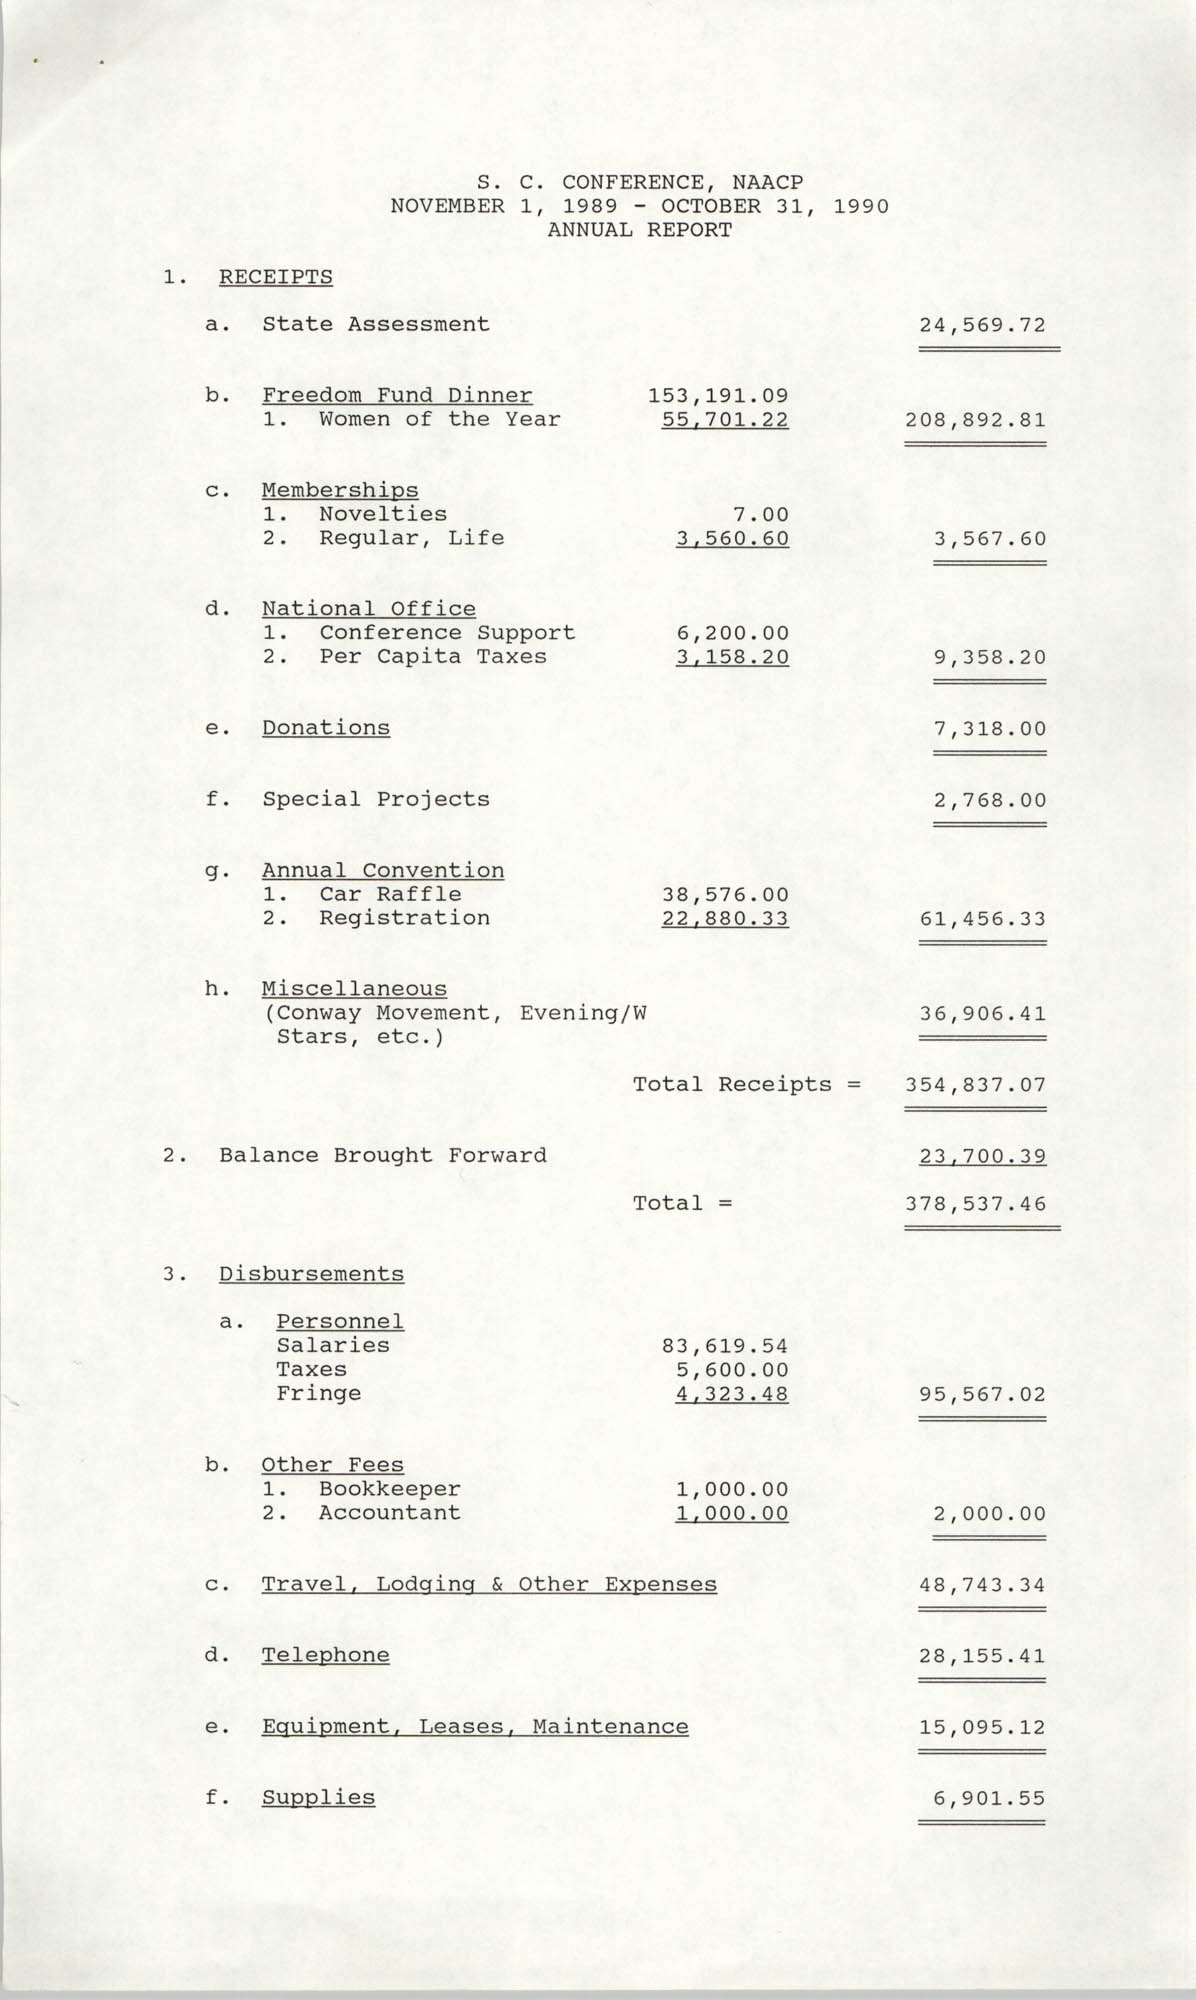 South Carolina Conference of Branches of the NAACP Annual Report, November 1, 1989 to October 31, 1990